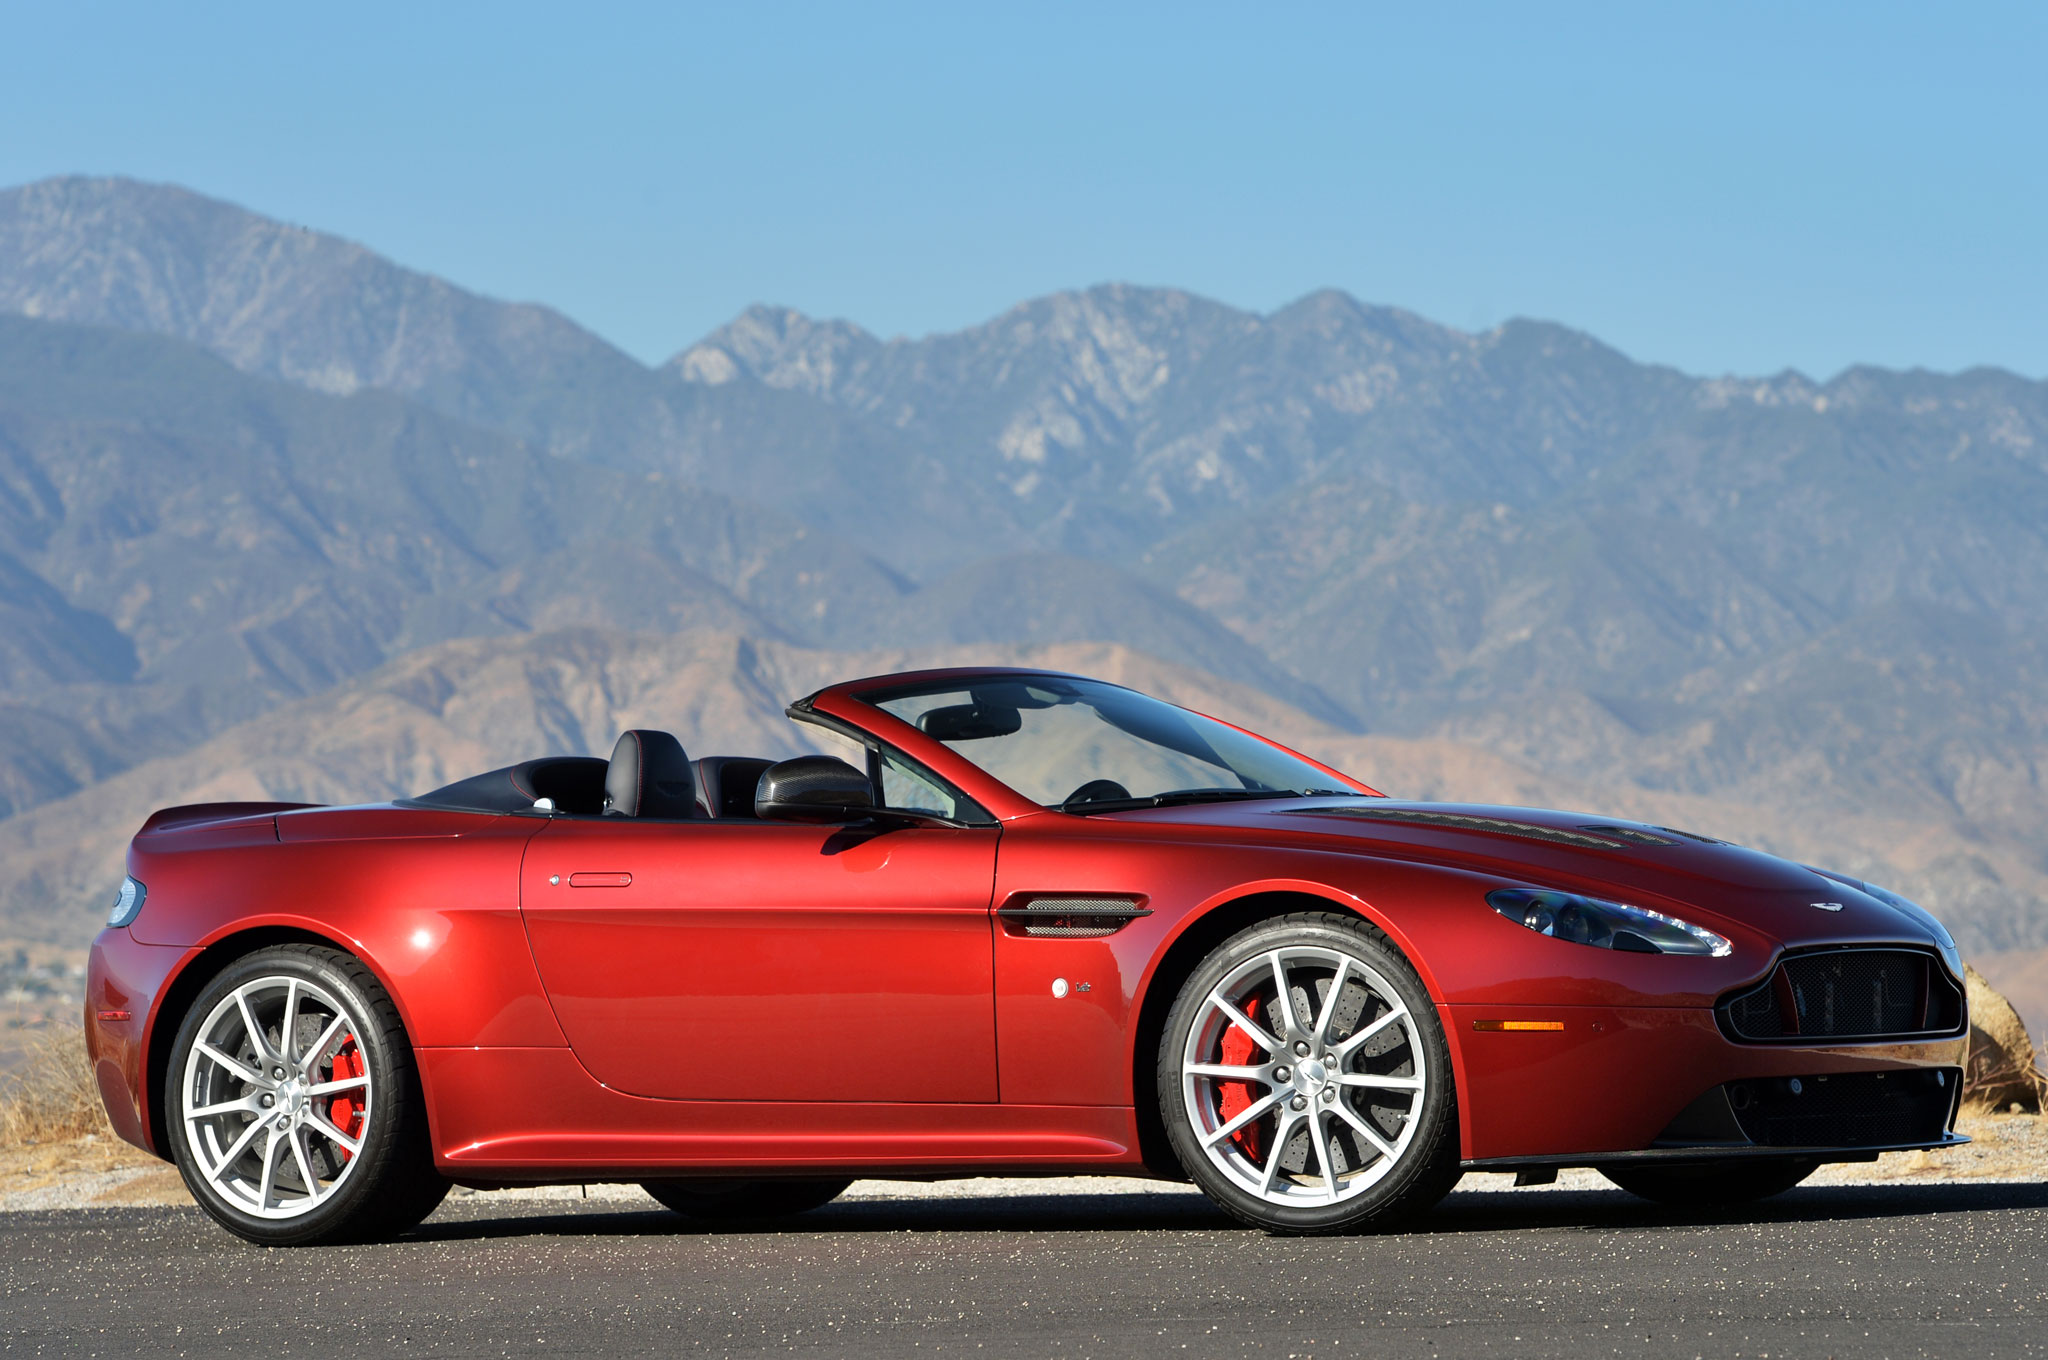 2018 Aston Martin V12 Vantage S Roadster photo - 5